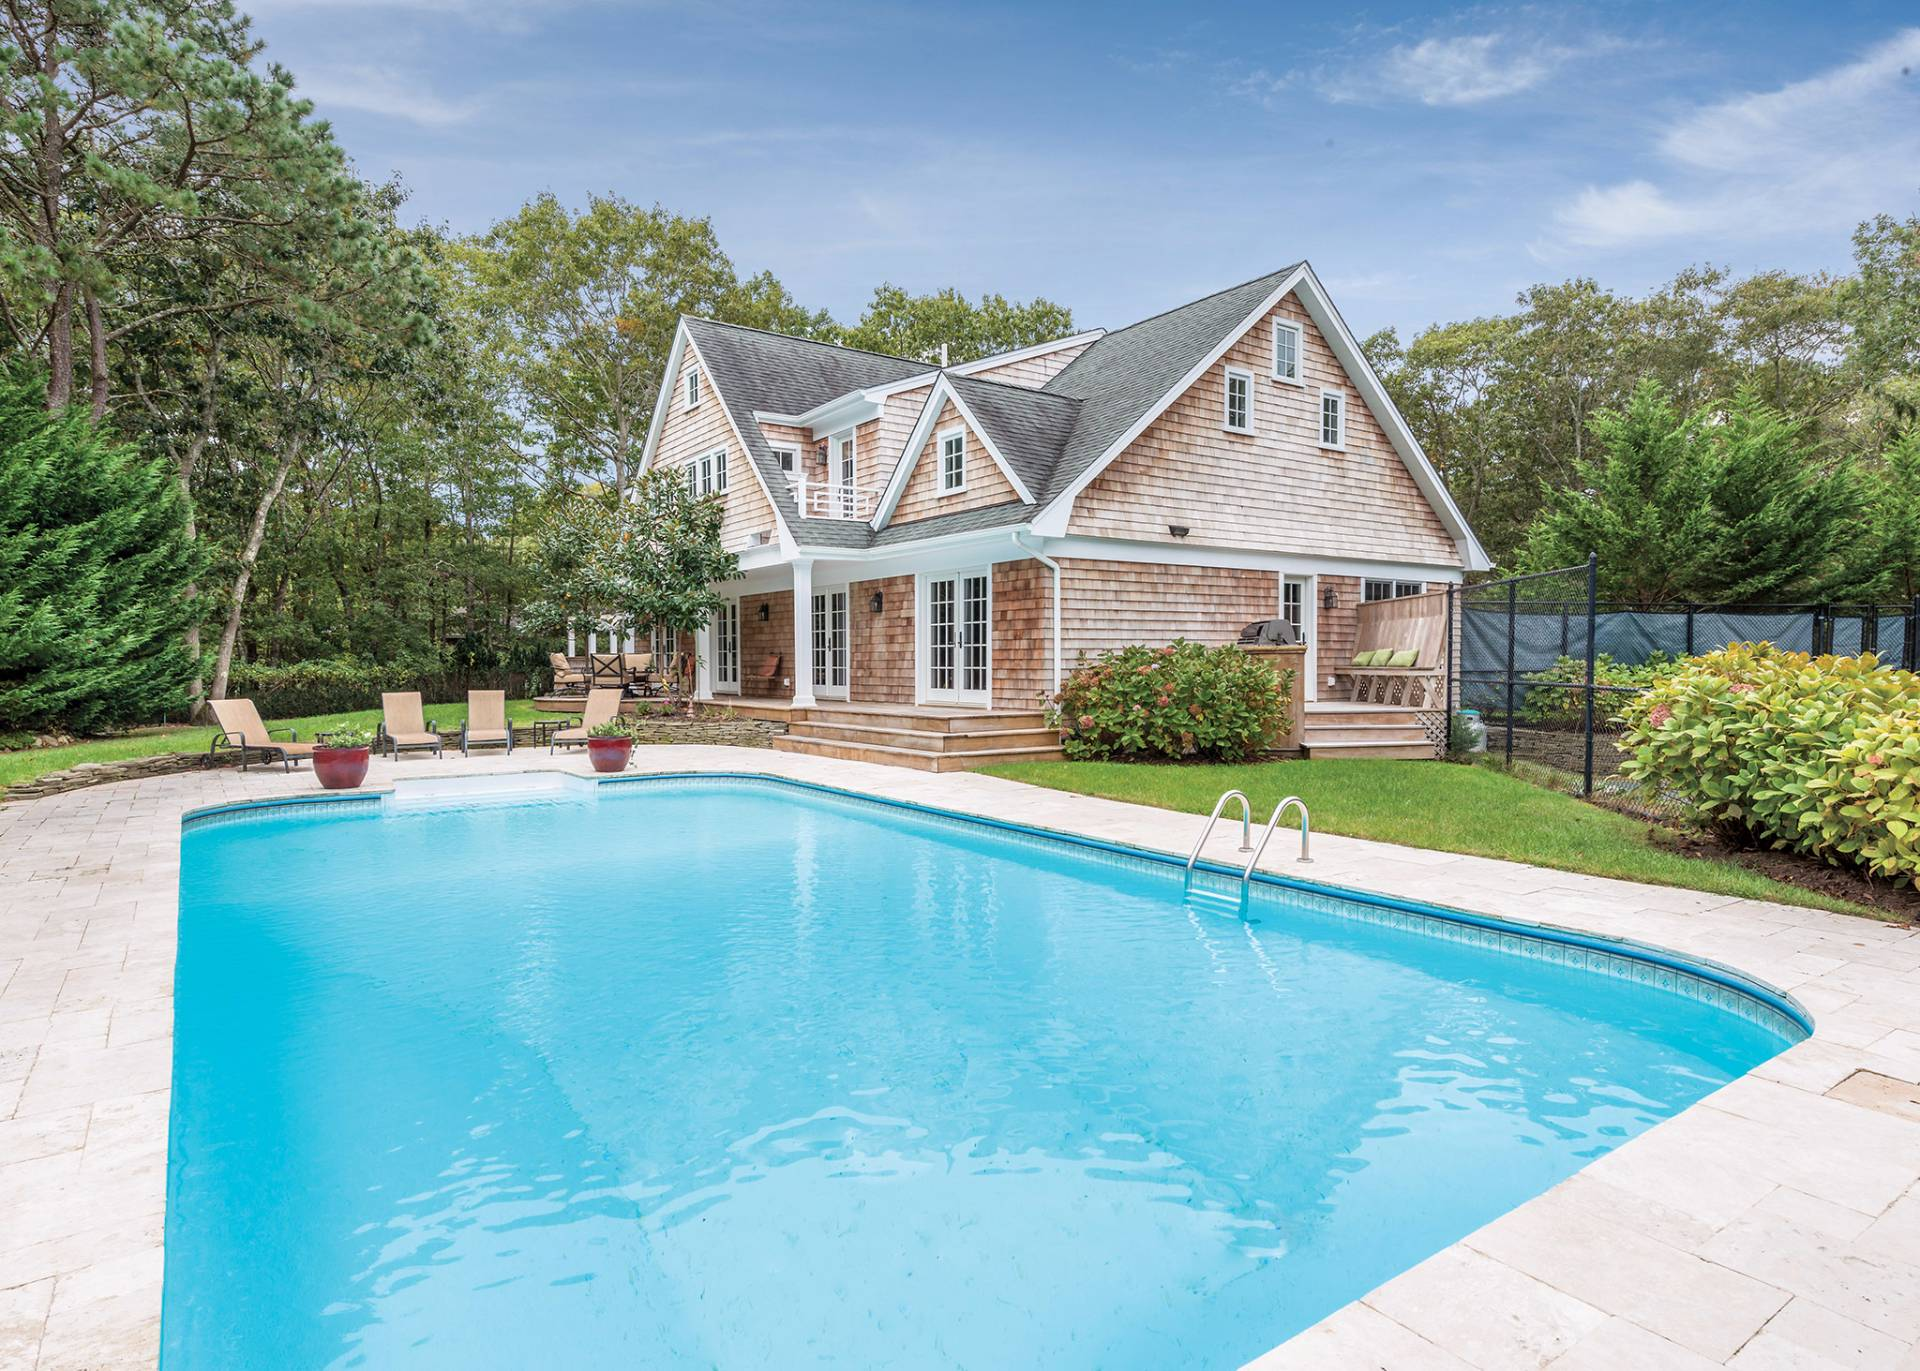 Casa Unifamiliar por un Venta en Builders Own Showplace With Pool & Tennis In Quogue Quogue, Nueva York